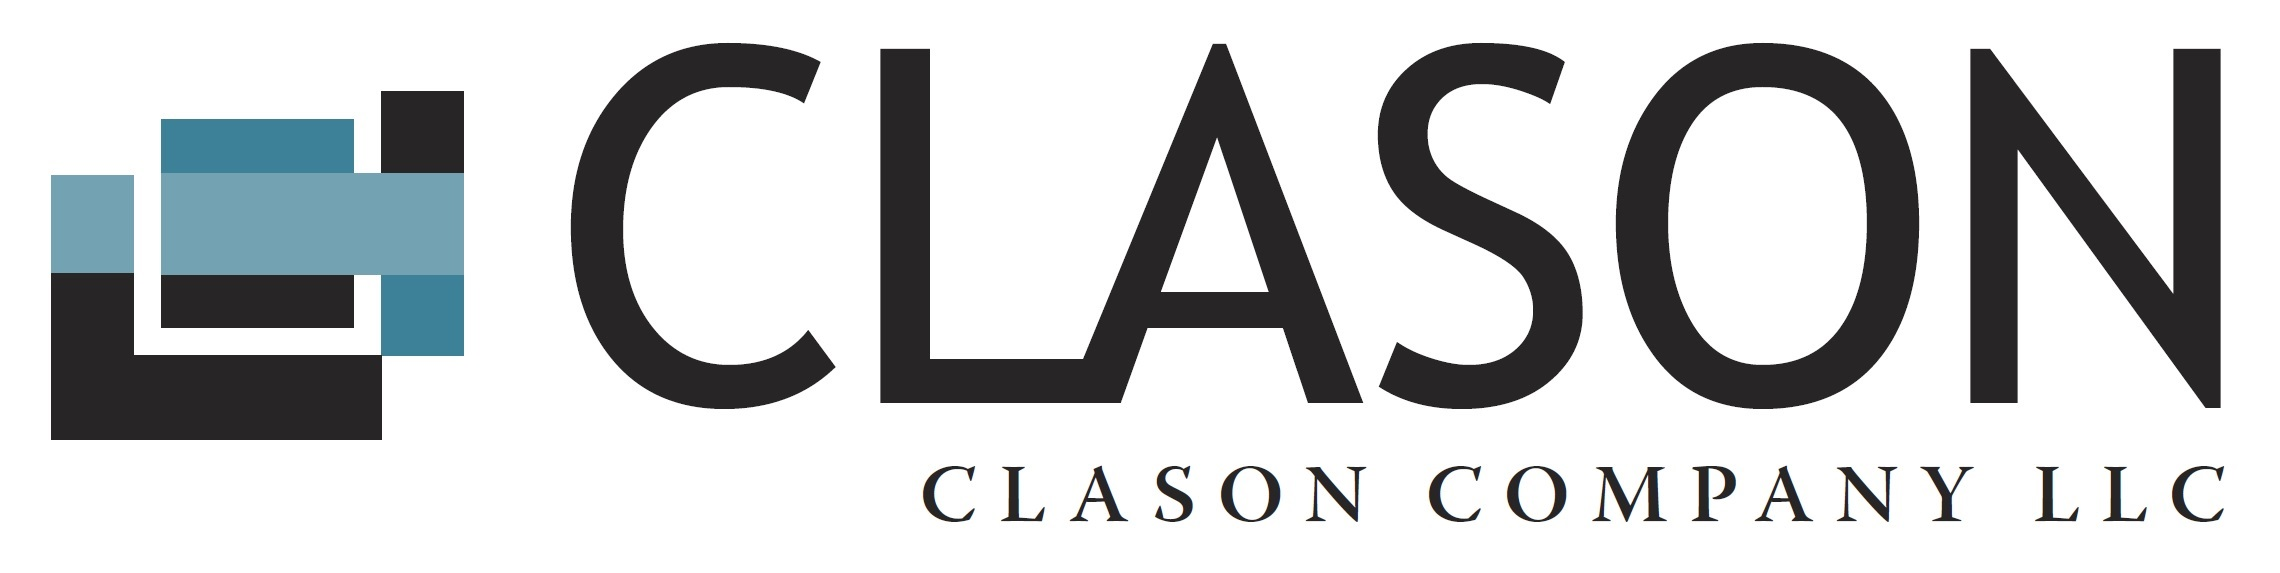 Clason Company | Home Builder & Developer in Southern Oregon